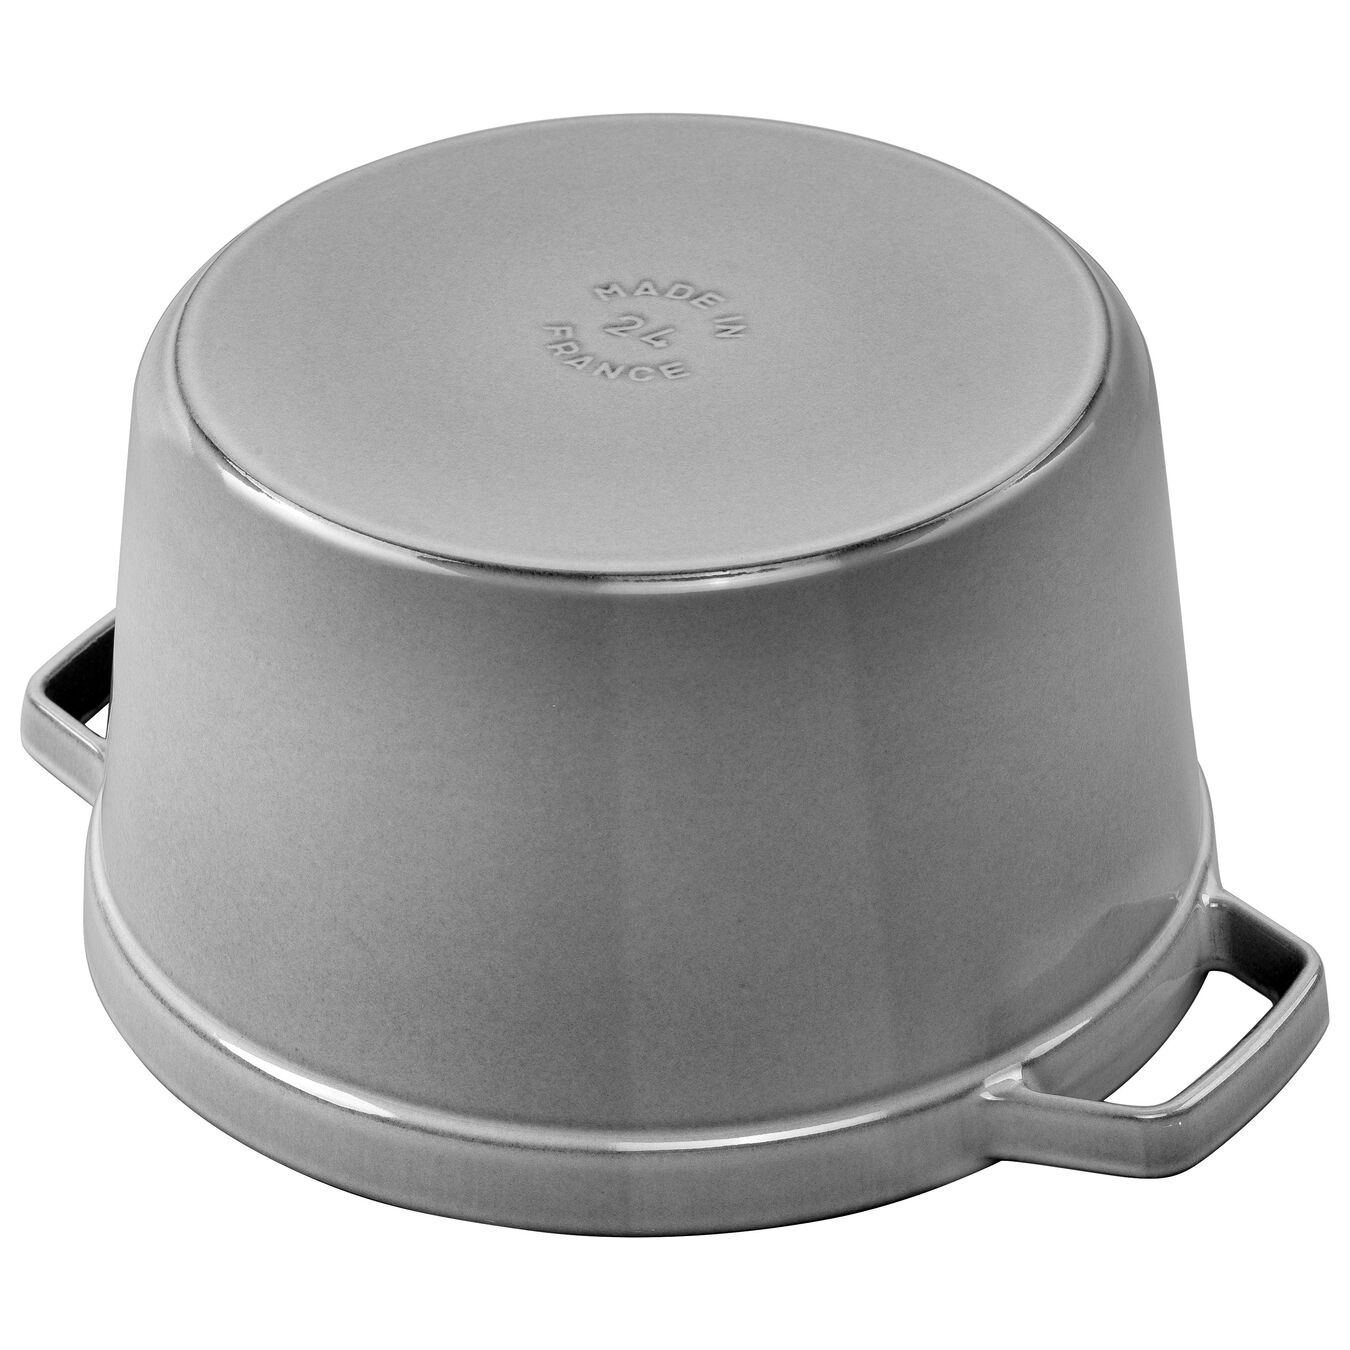 5 qt, round, Cocotte, graphite grey - Visual Imperfections,,large 2